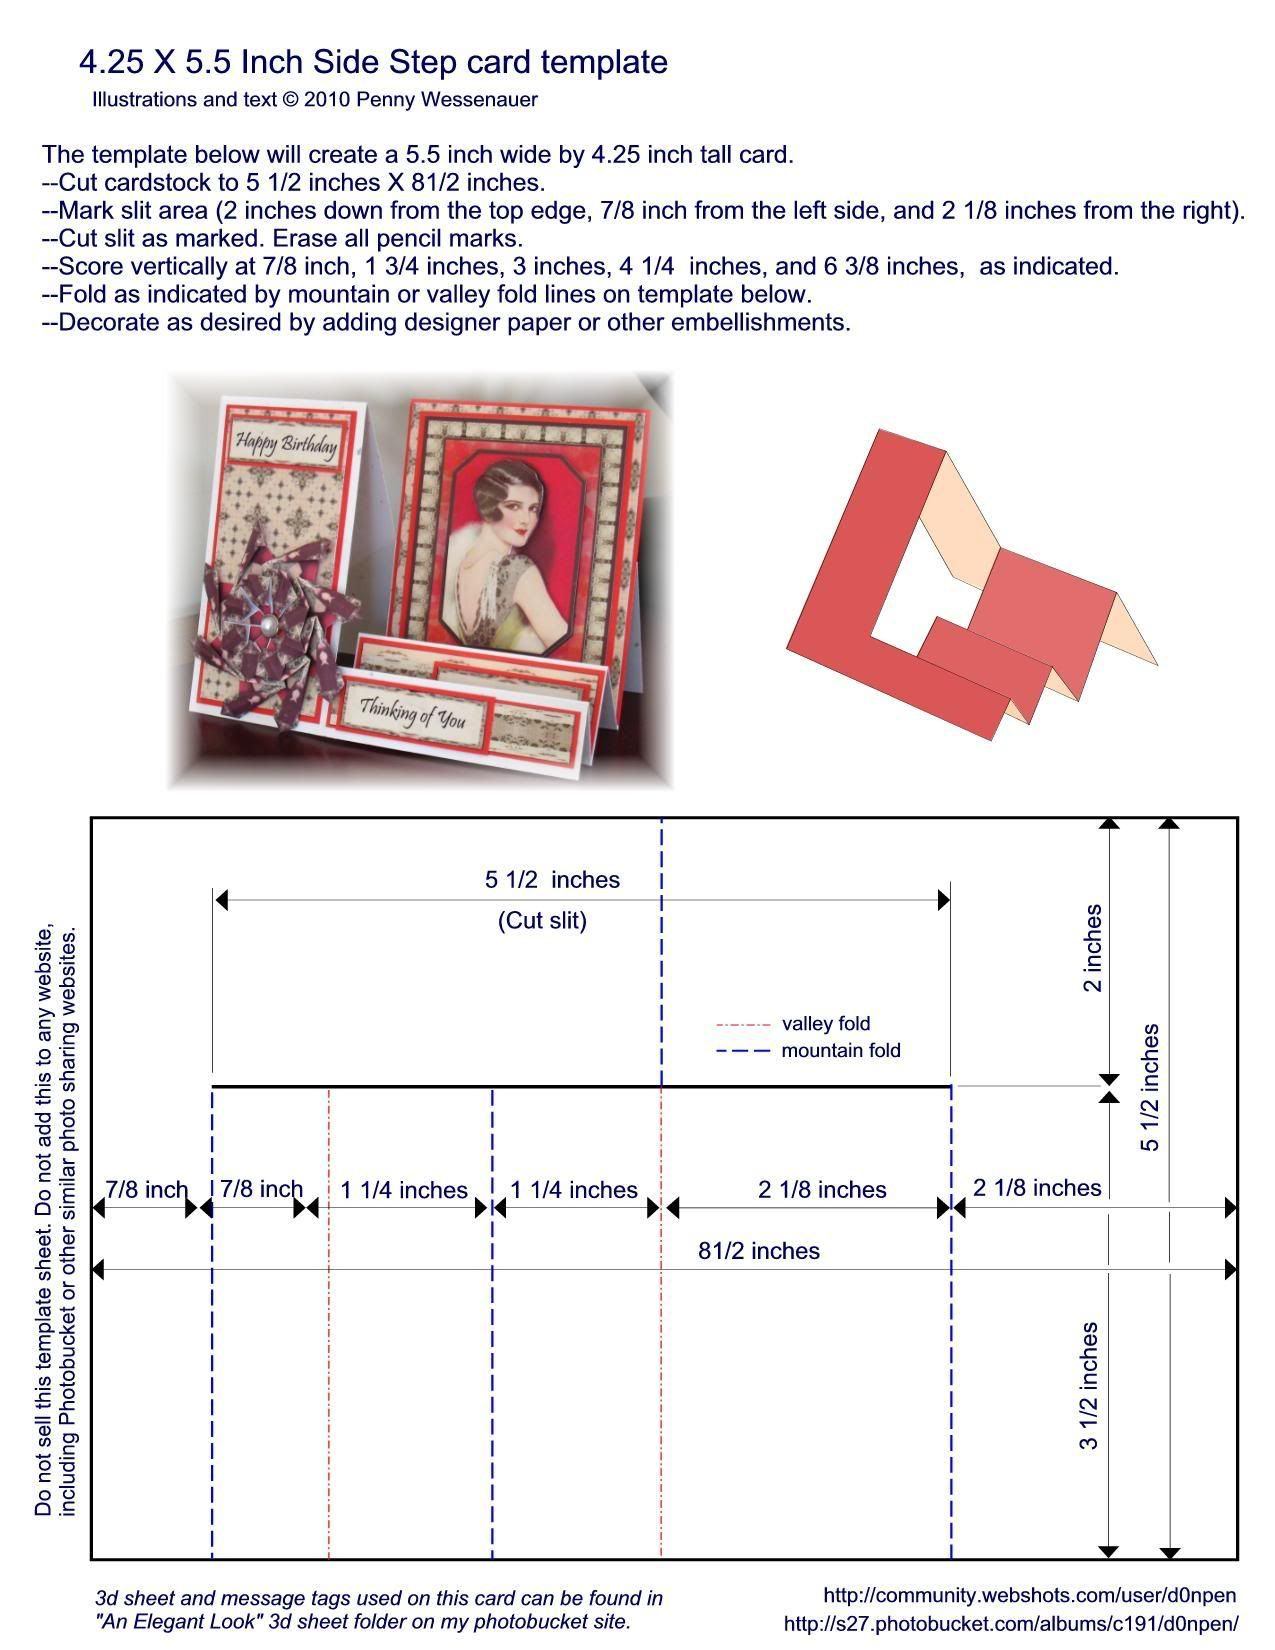 a2  4 25 x 5 5  side step card template